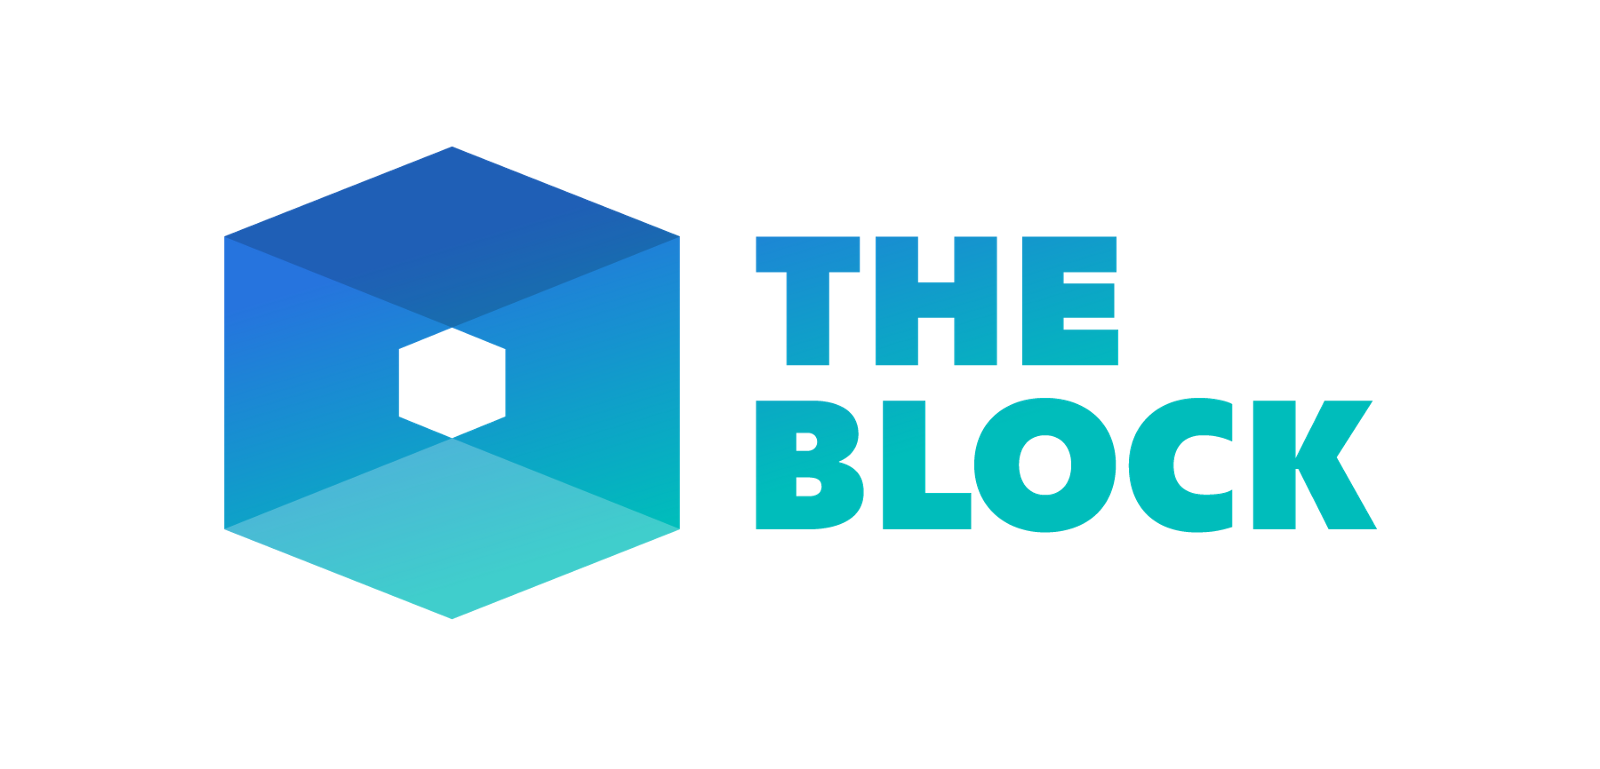 The-Block-Logo-PNG.png